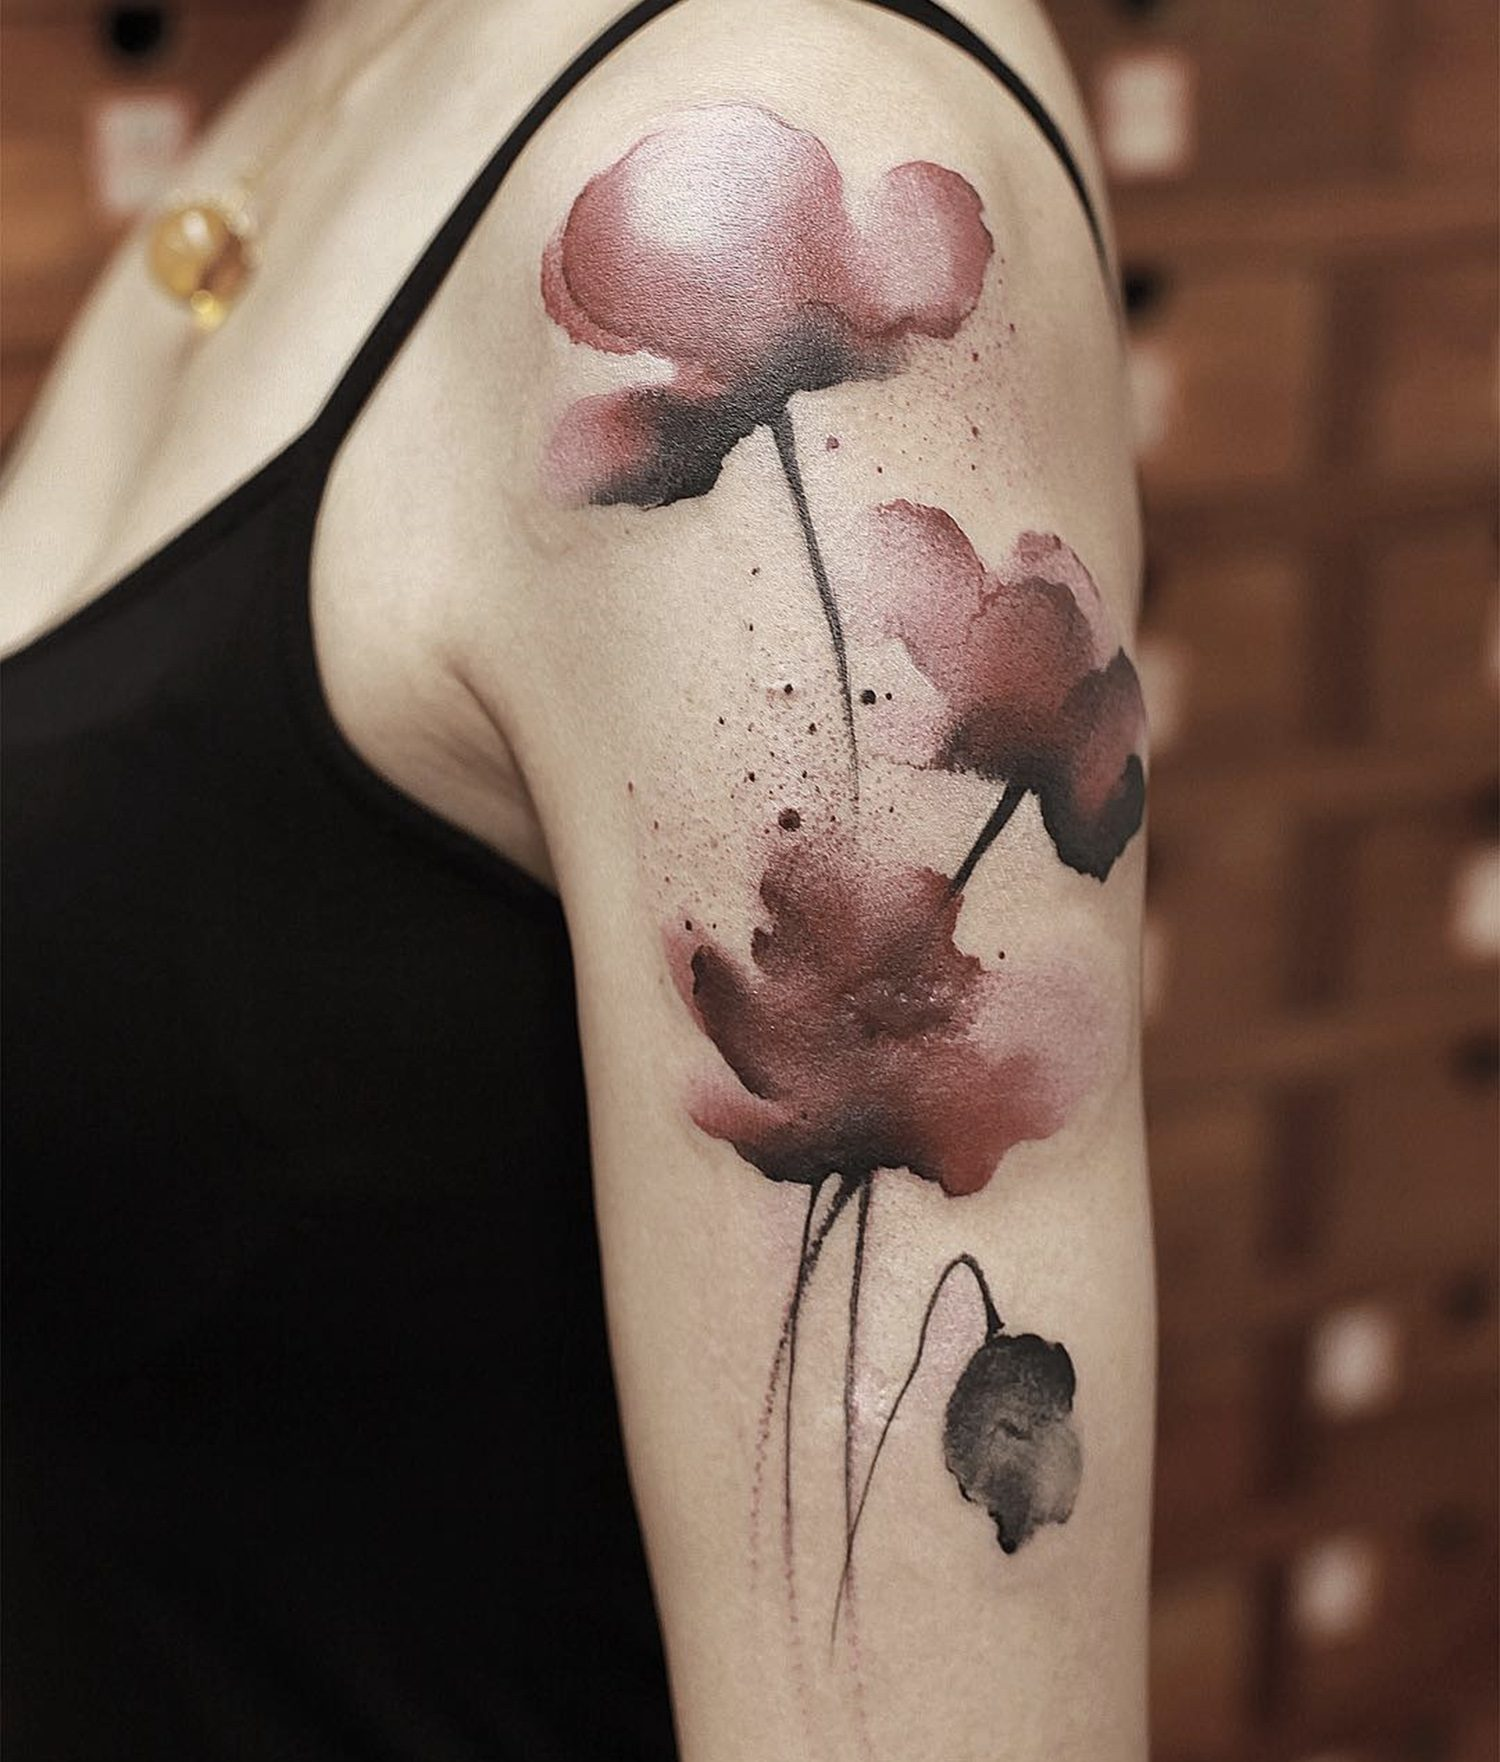 red flowers, painting style tattoo, sleeve